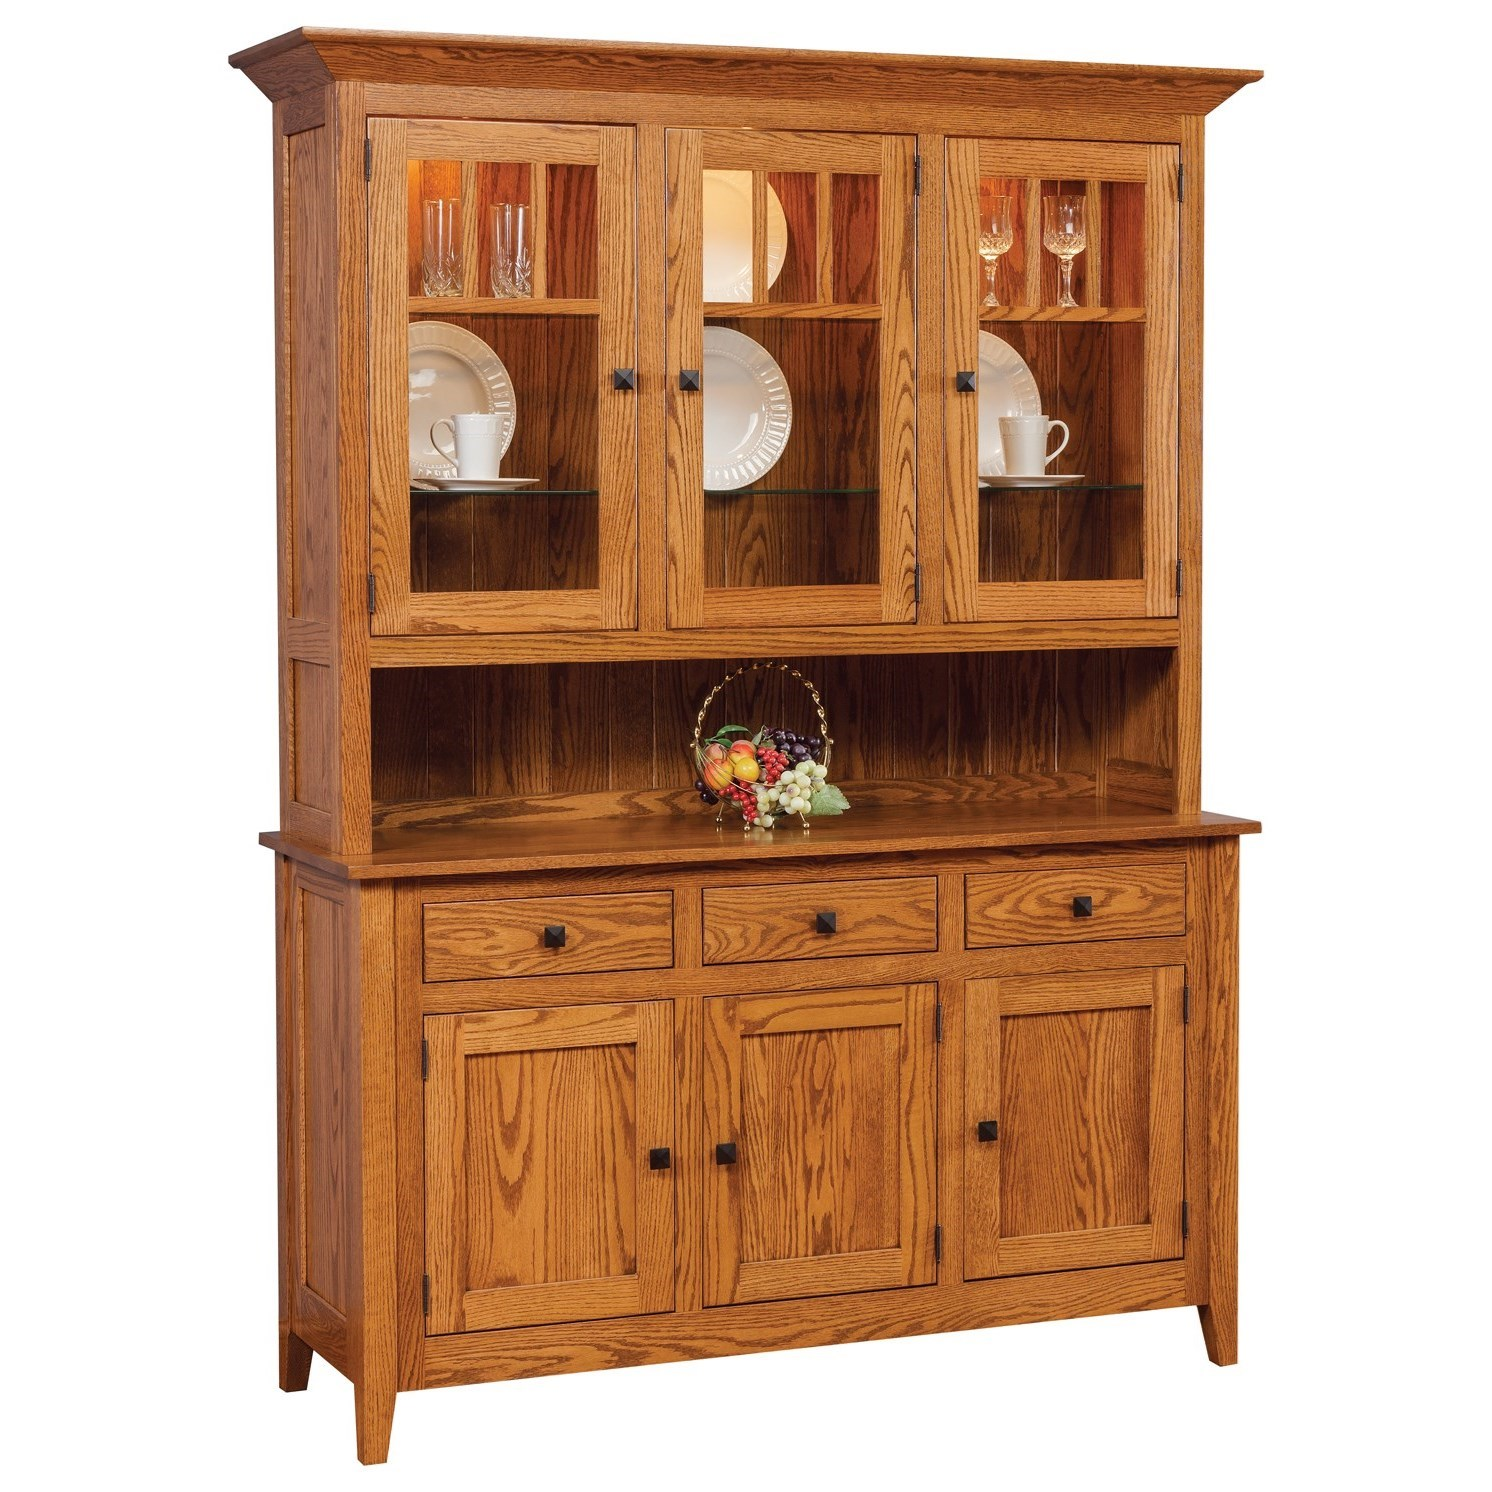 Canterbury Buffet and Hutch by Meadow Lane Wood at Saugerties Furniture Mart